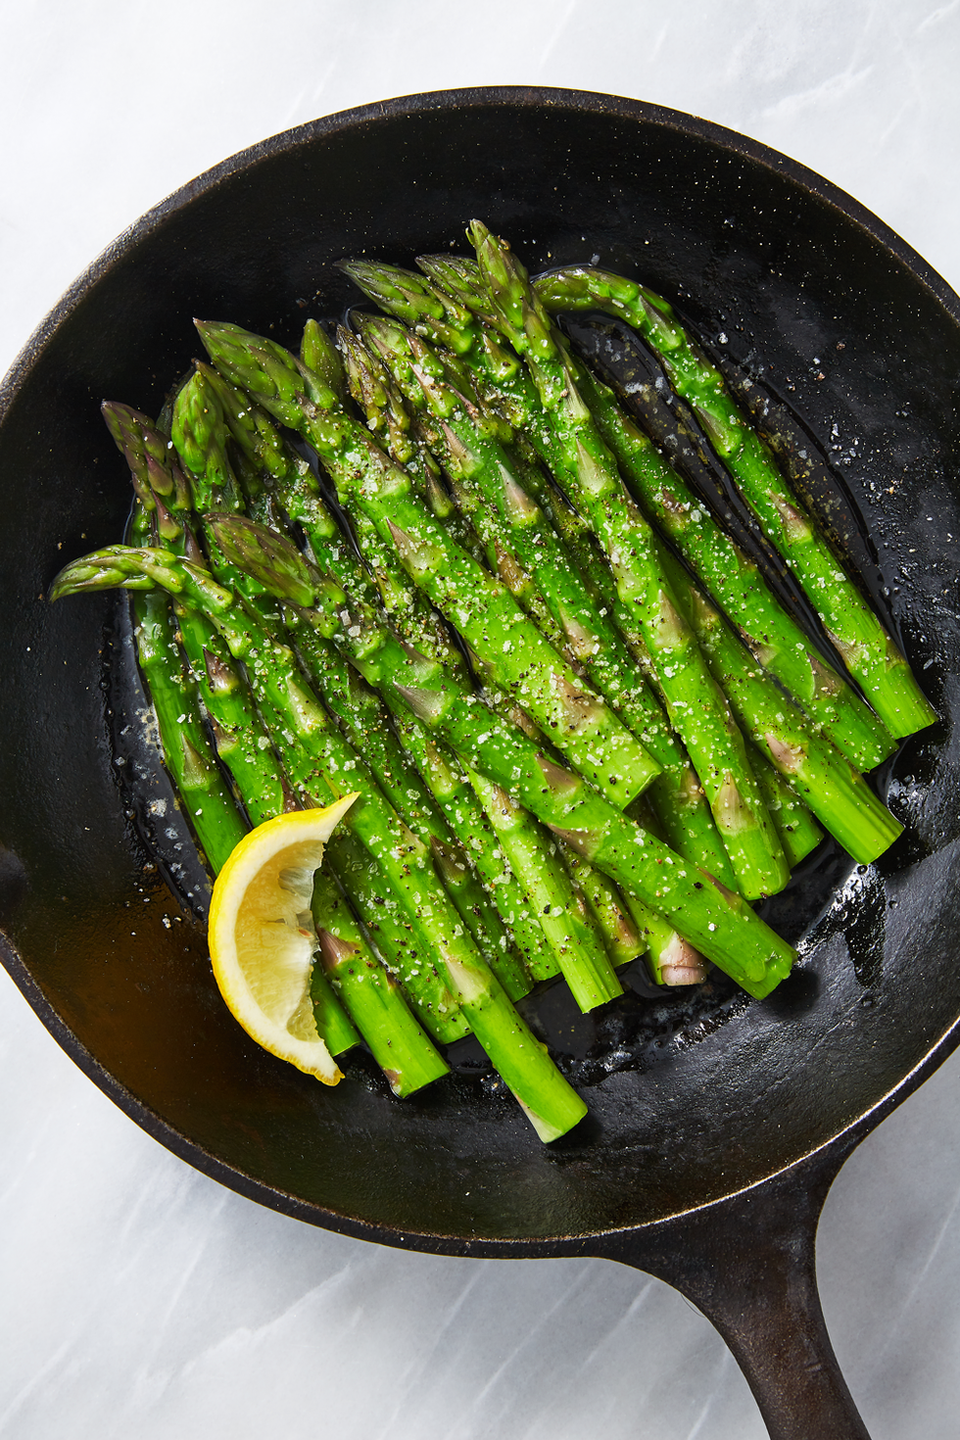 """<p>If Easter had an official side dish, it would be this zippy green fibers stalk; <a href=""""https://www.goodhousekeeping.com/food-recipes/cooking/g19746678/how-to-cook-asparagus/"""" rel=""""nofollow noopener"""" target=""""_blank"""" data-ylk=""""slk:asparagus is at peak freshness"""" class=""""link rapid-noclick-resp"""">asparagus is at peak freshness</a> right before summer hits.</p><p><em><a href=""""https://www.delish.com/cooking/recipe-ideas/a26816043/easy-steamed-asparagus-recipe/"""" rel=""""nofollow noopener"""" target=""""_blank"""" data-ylk=""""slk:Get the recipe from Delish »"""" class=""""link rapid-noclick-resp"""">Get the recipe from Delish »</a></em></p>"""